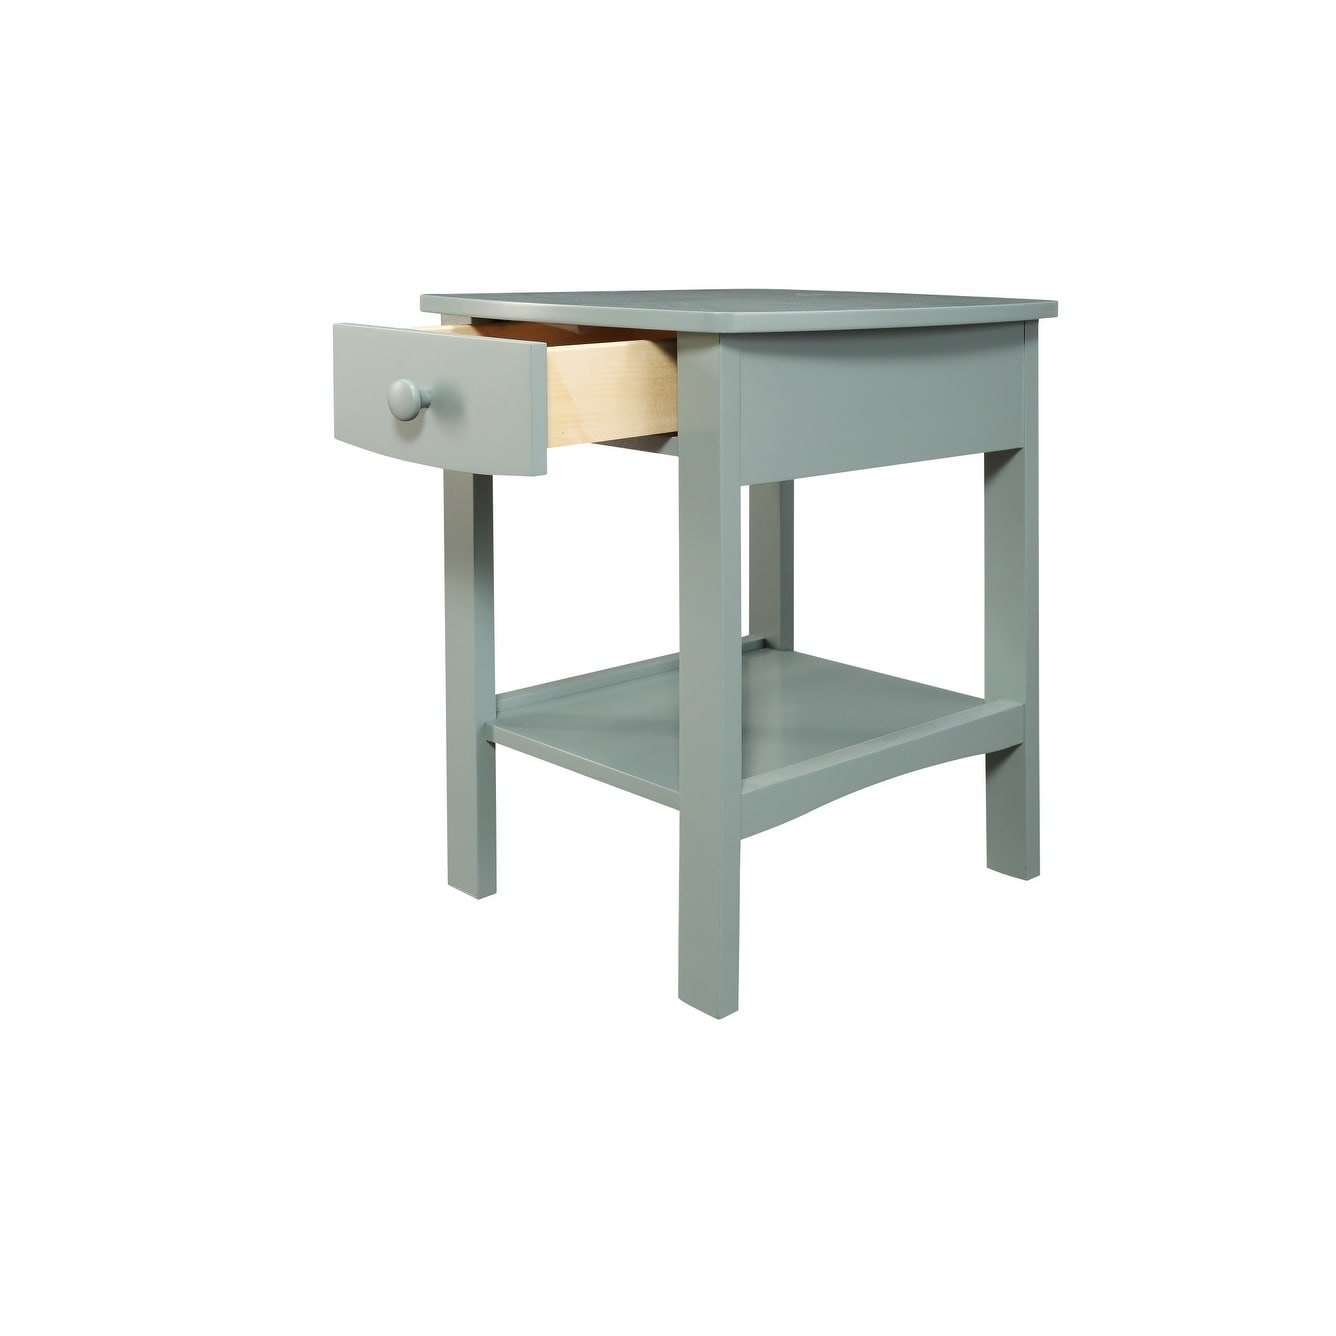 Shop Emerald Home Decor White Nightstand With Open Shelf And Wood Hardware 1 Drawer